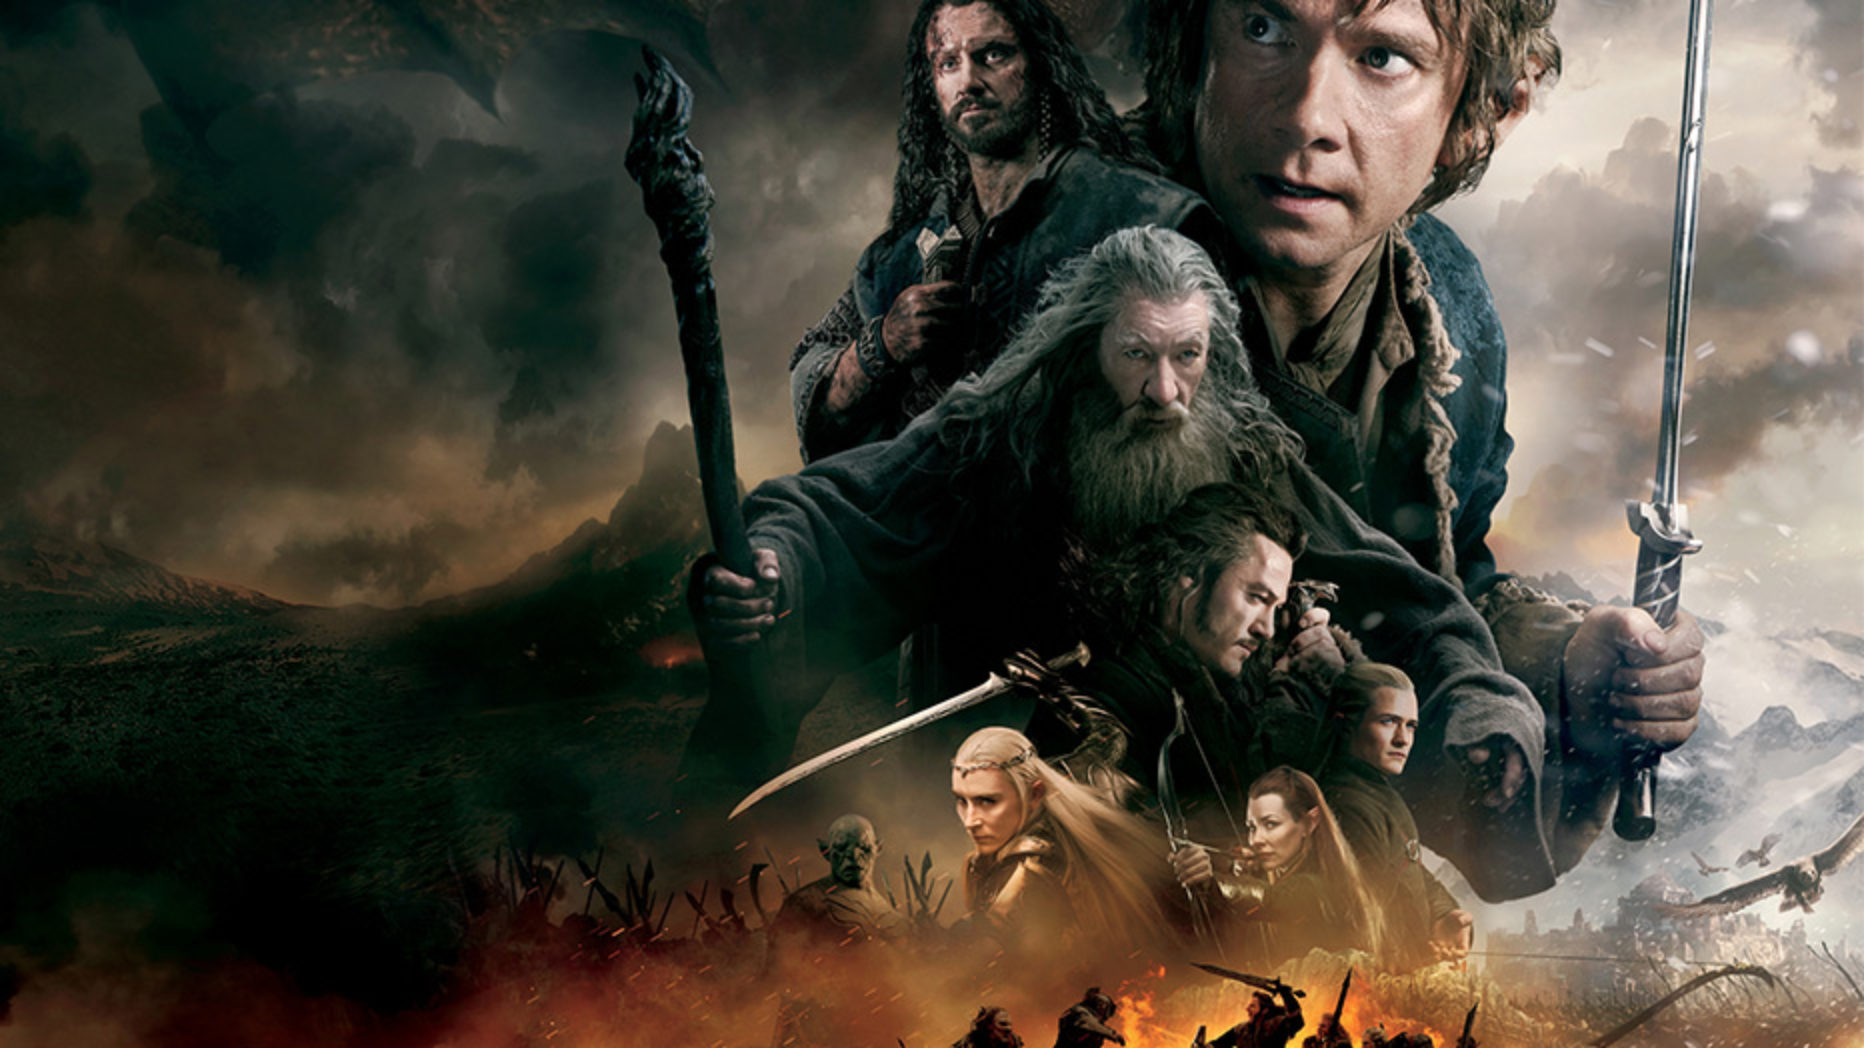 The Hobbit: The Battle of Five Armies – IMAX 3D HFR